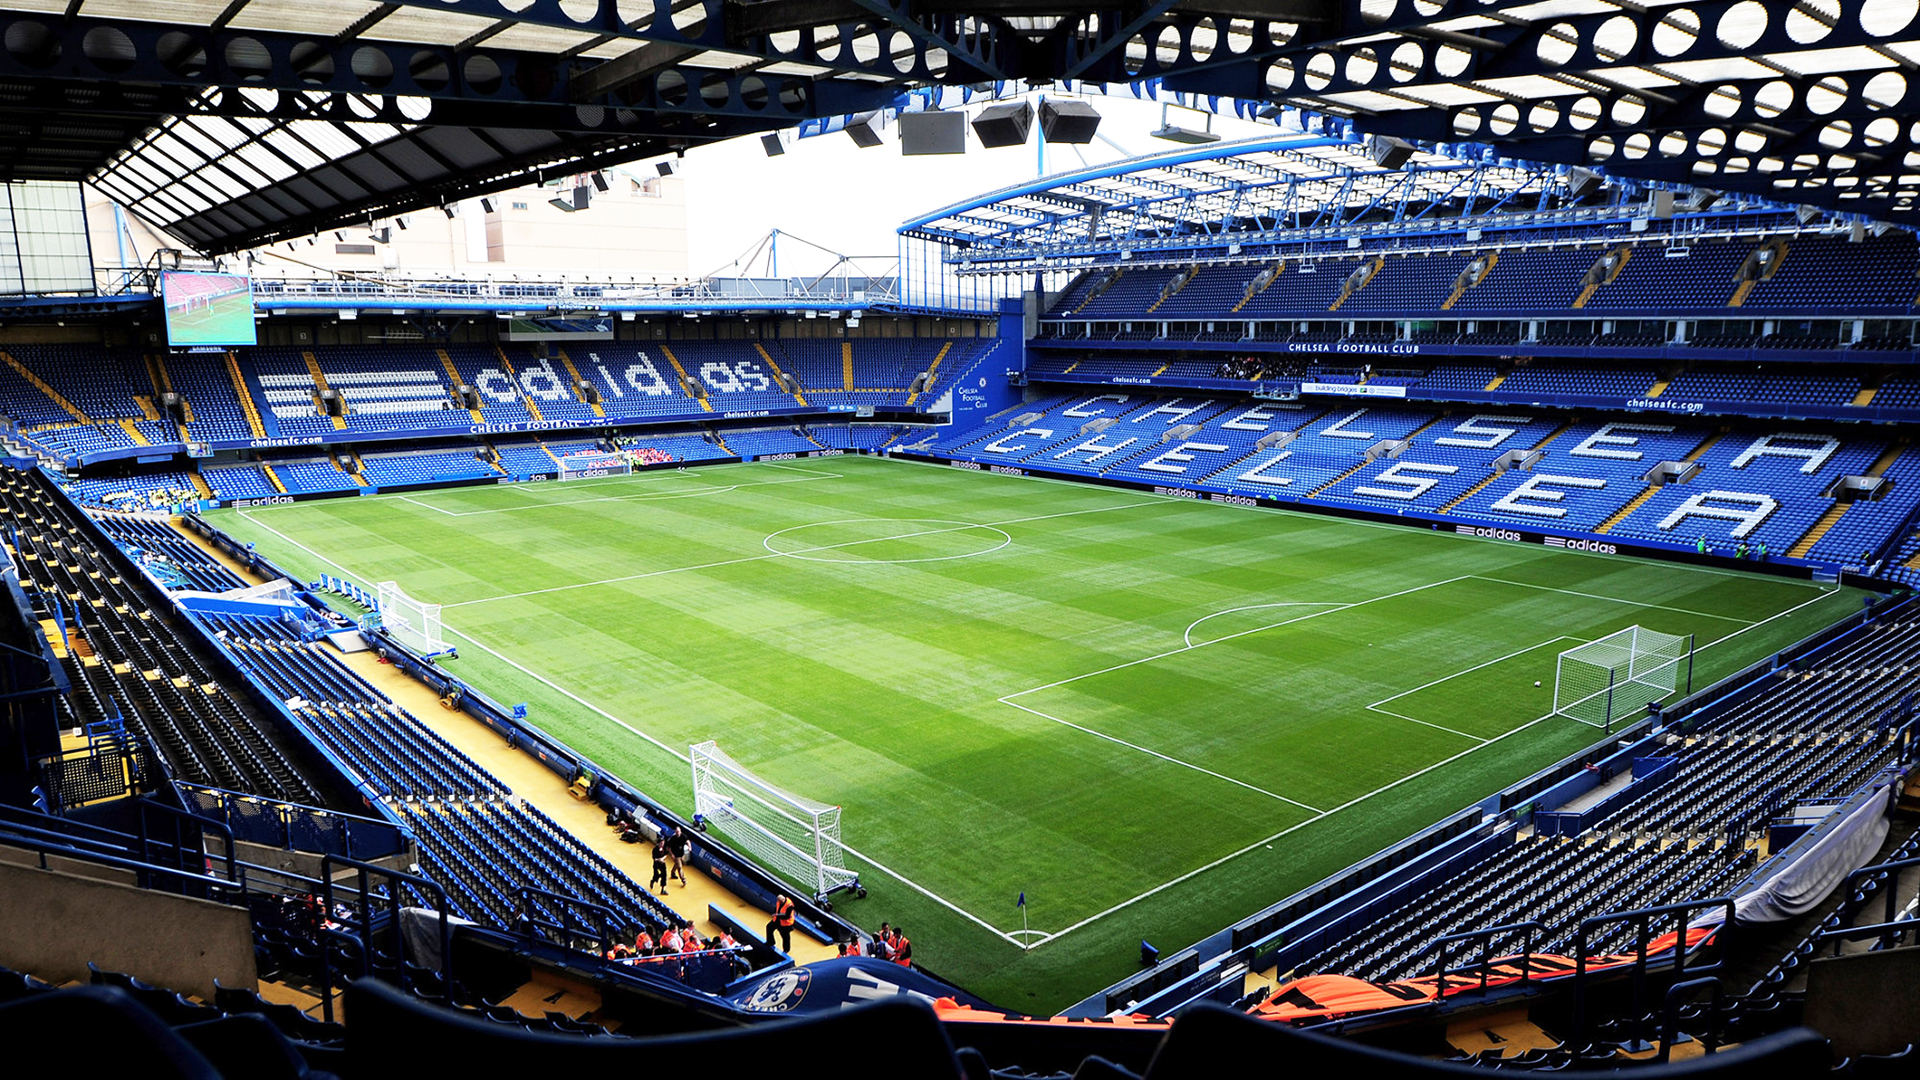 Stamford Bridge Stadium. Virtual background to use on Zoom, Microsoft Teams, Skype, Google Meet, WebEx or any other compatible app.